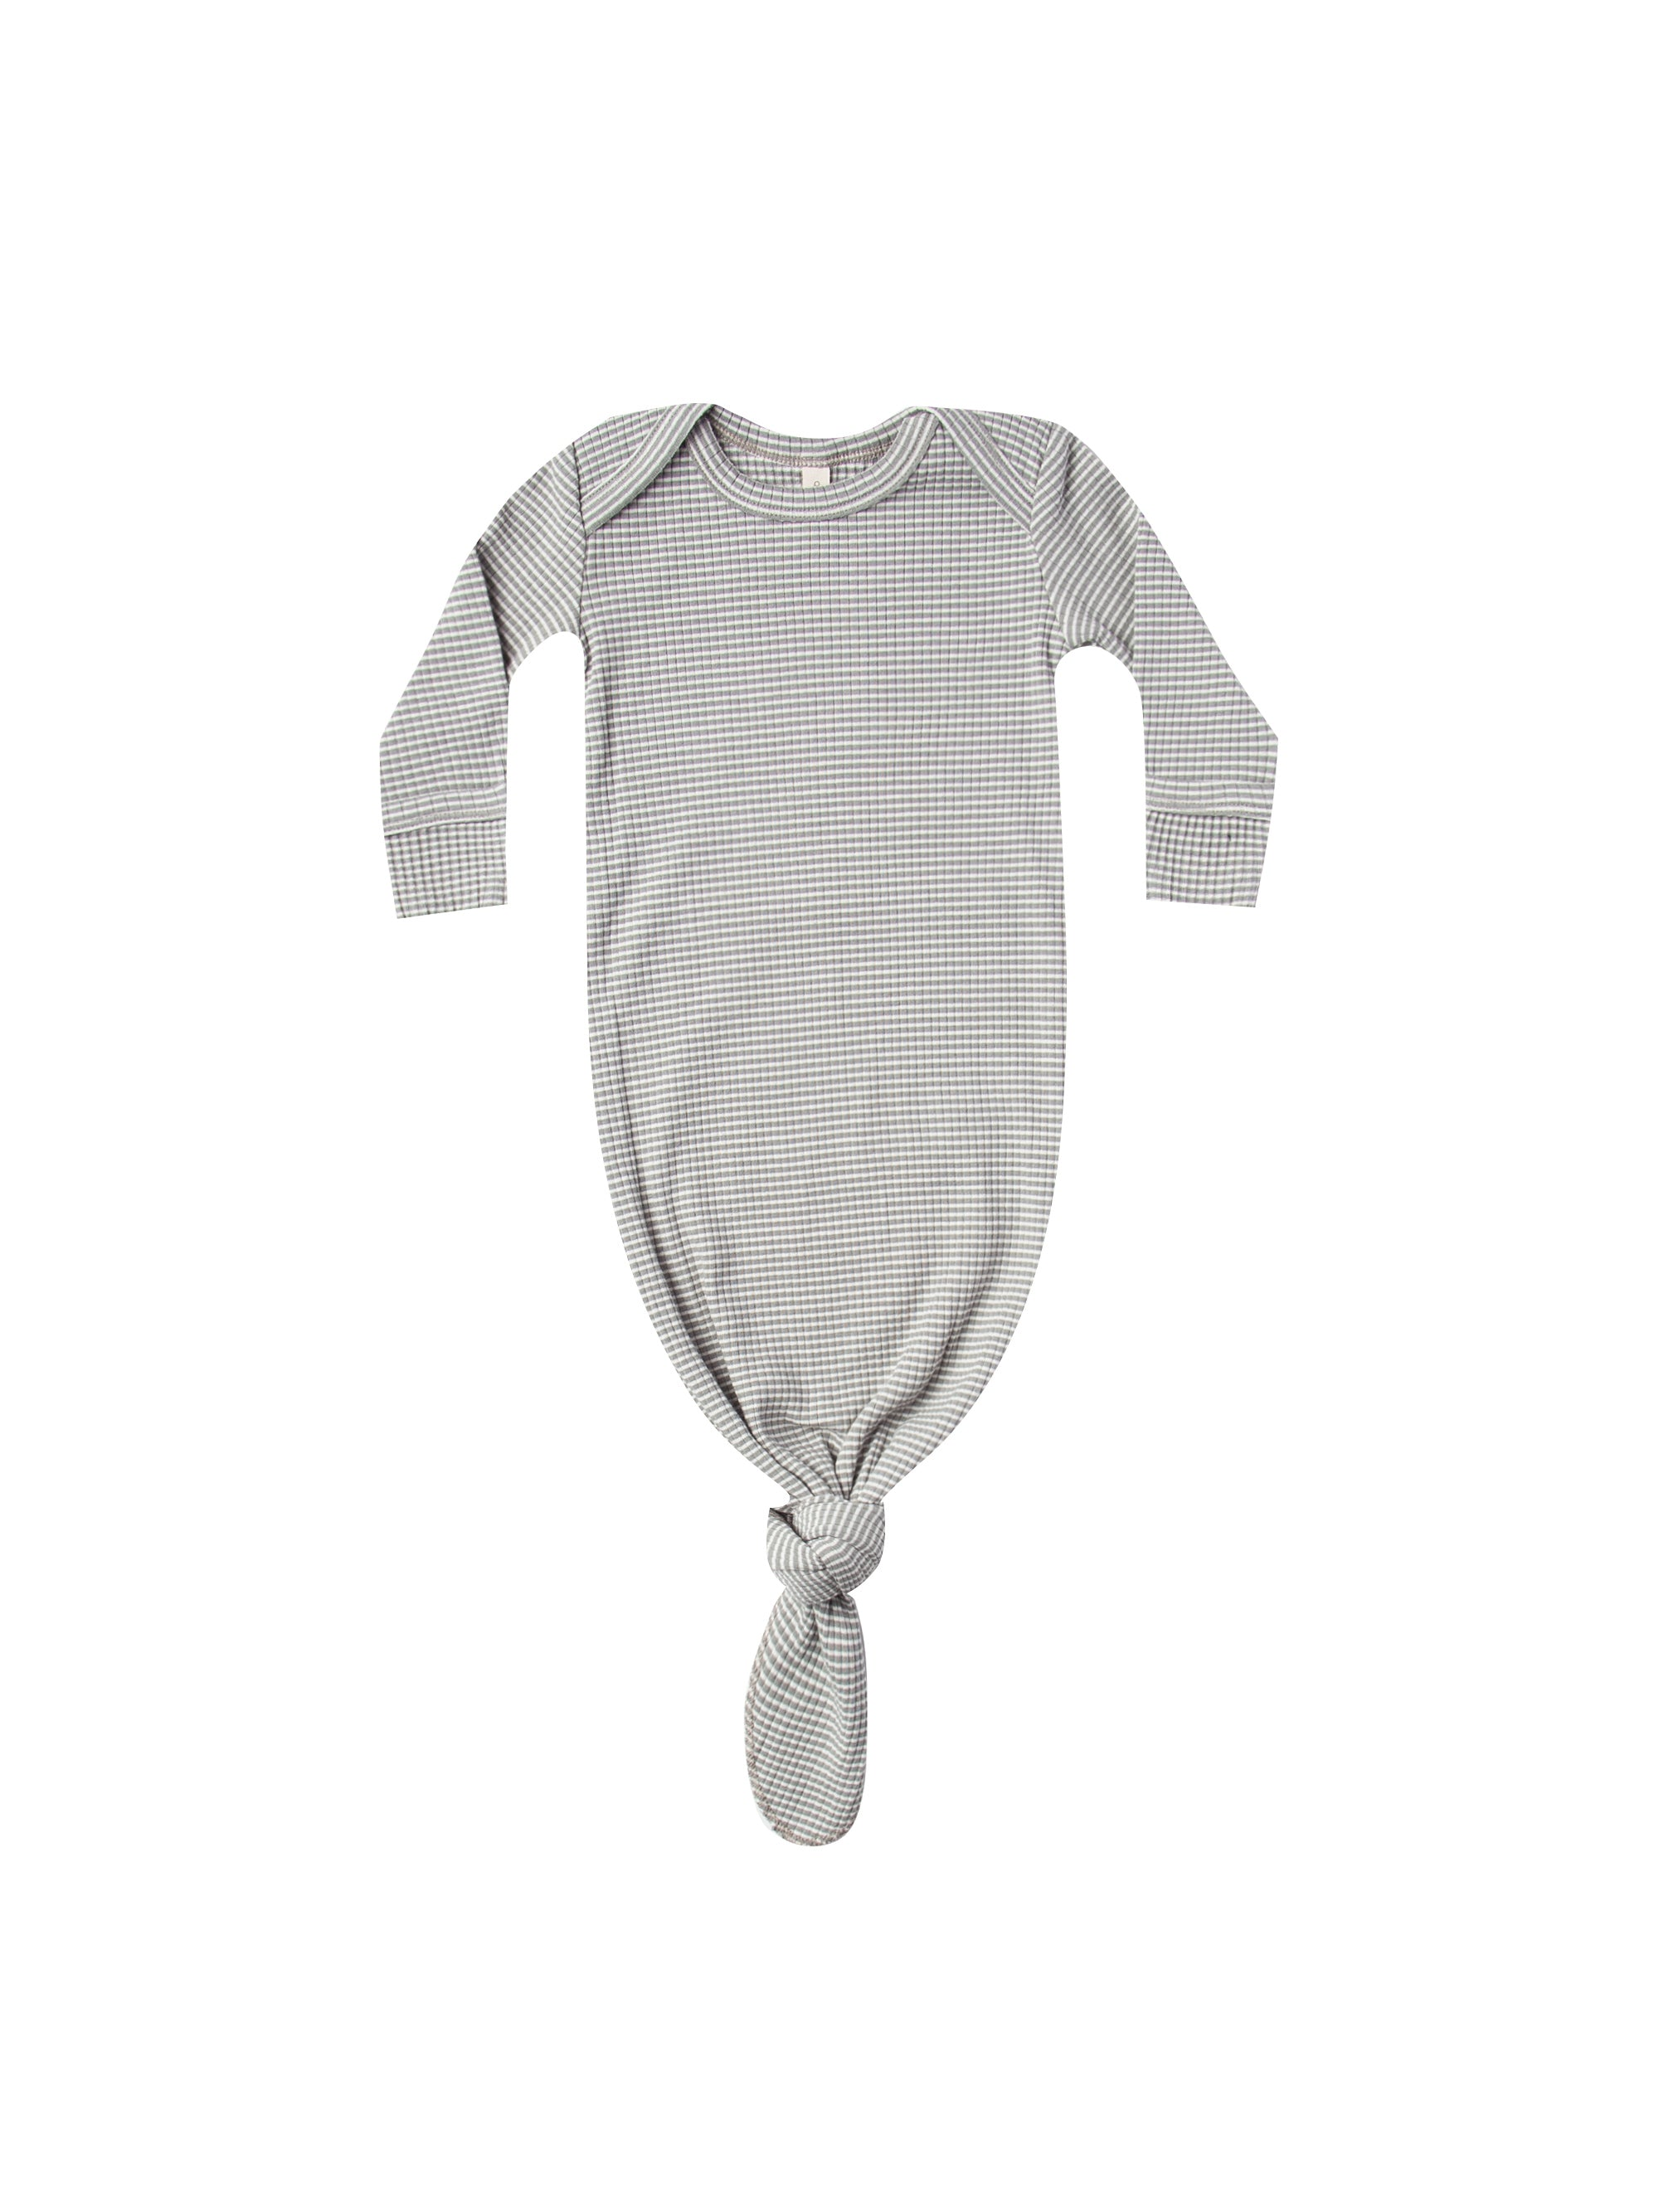 Quincy Mae - Ribbed Knotted Baby Gown (Eucalyptus Stripe)